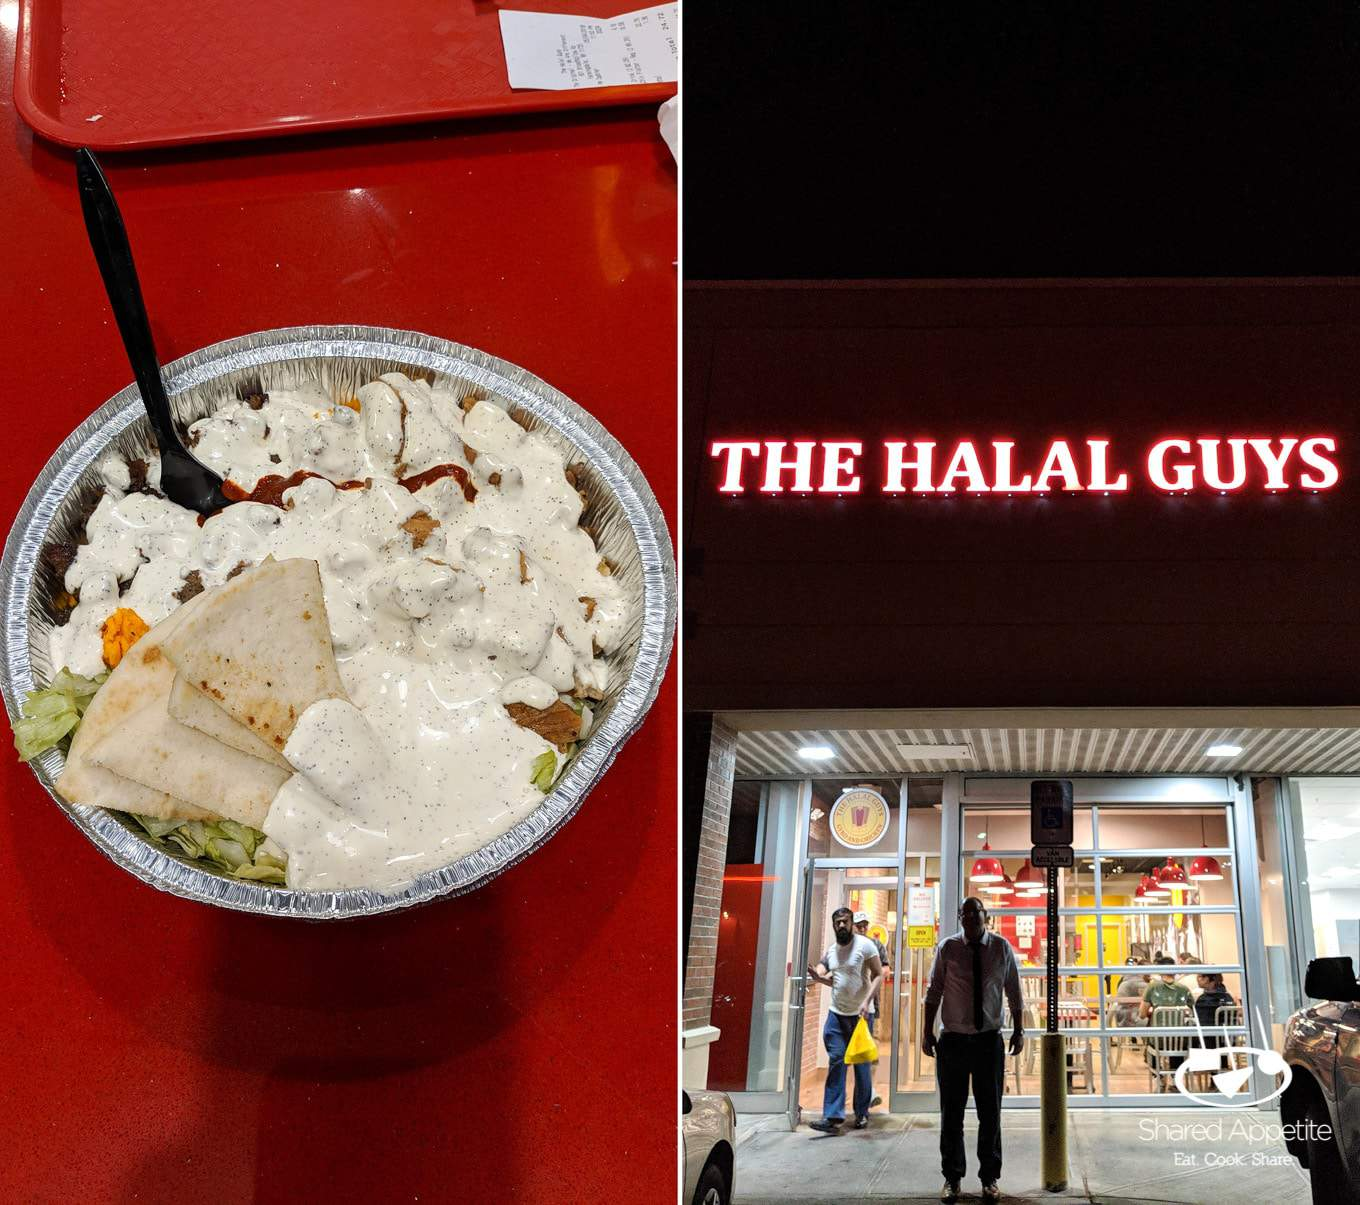 Best Halal Food on Long Island The Halal Guys